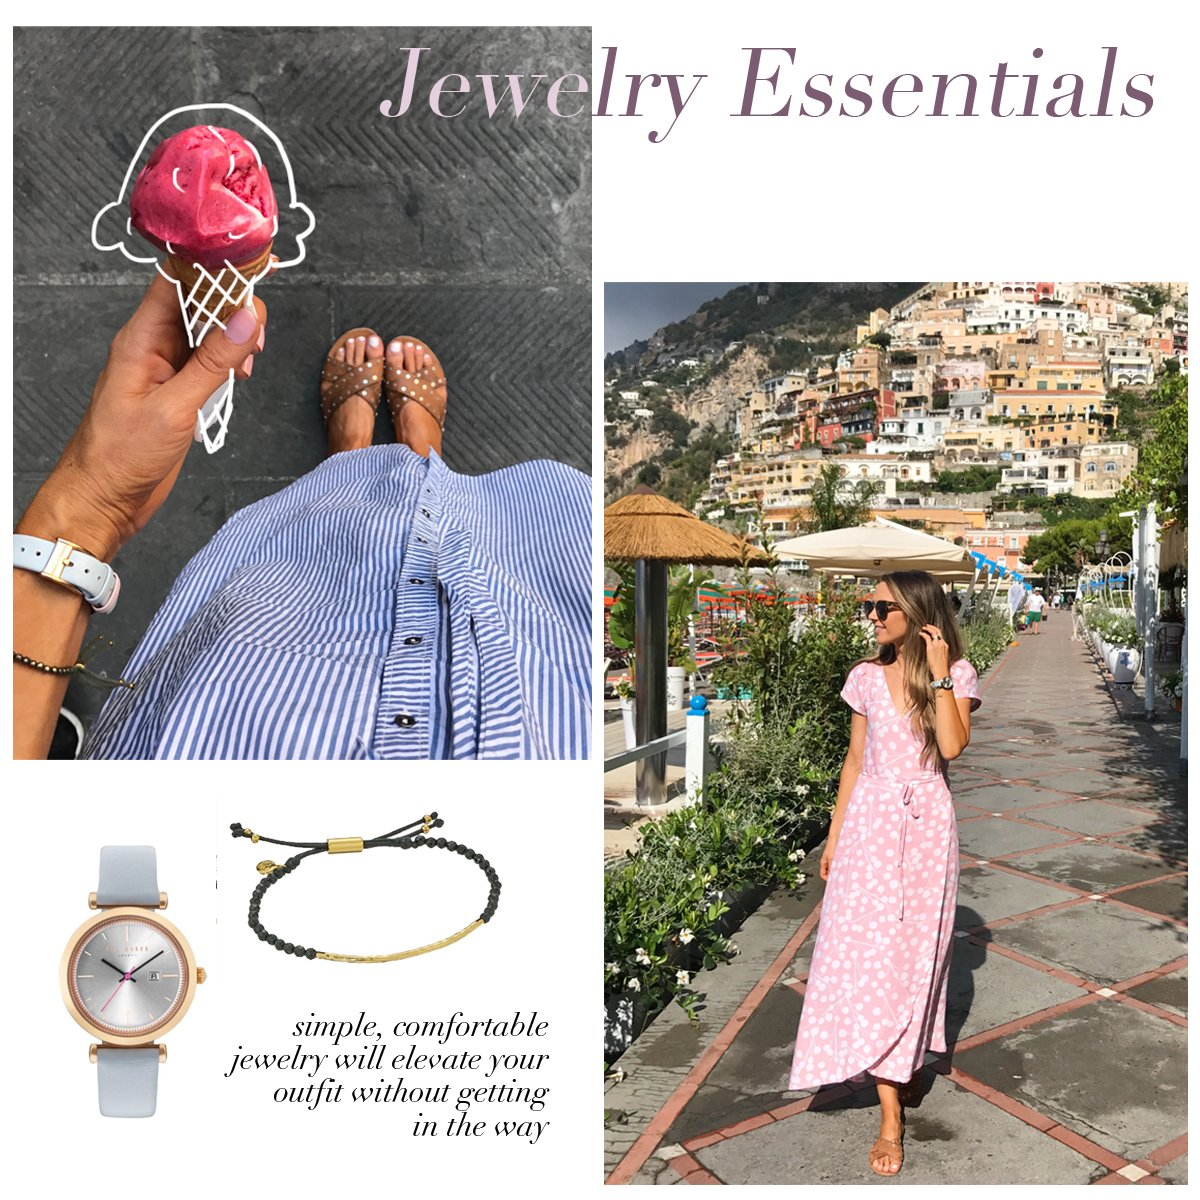 delicate jewelry and a comfortable watch are the best for traveling | merricksart.com